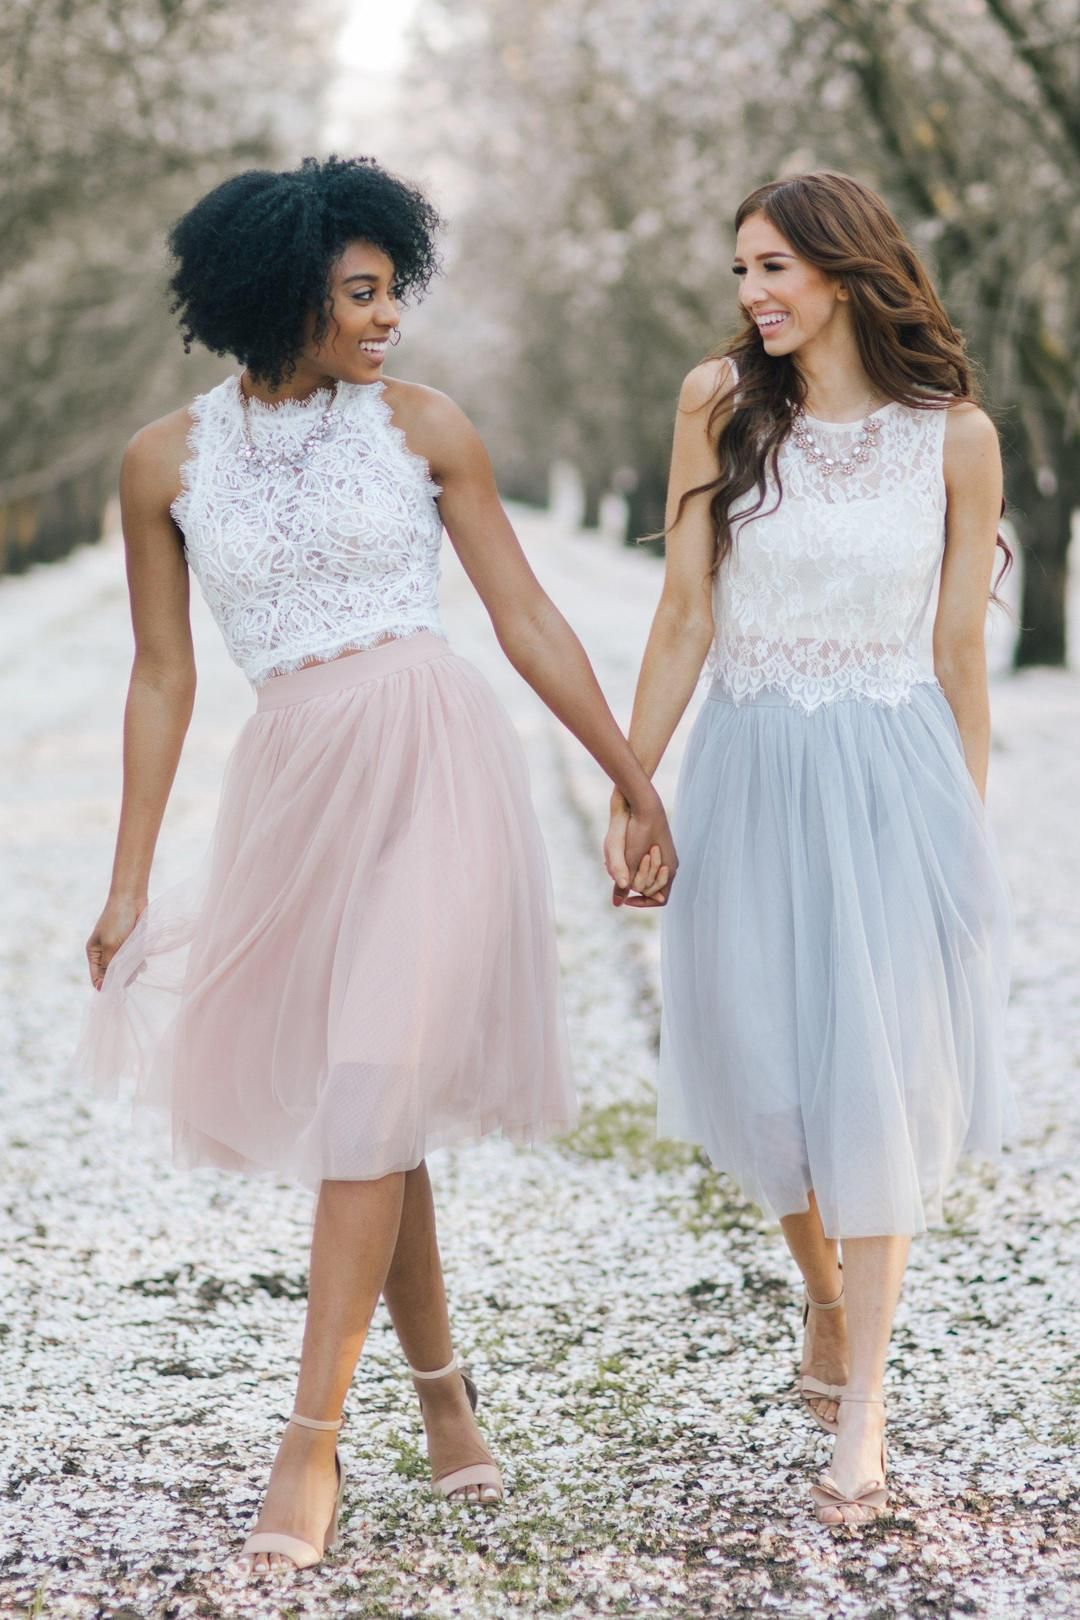 Eloise Tulle Midi Skirt Tulle Midi Skirt Tulle Skirts Outfit White Lace Top Sleeveless [ 1620 x 1080 Pixel ]